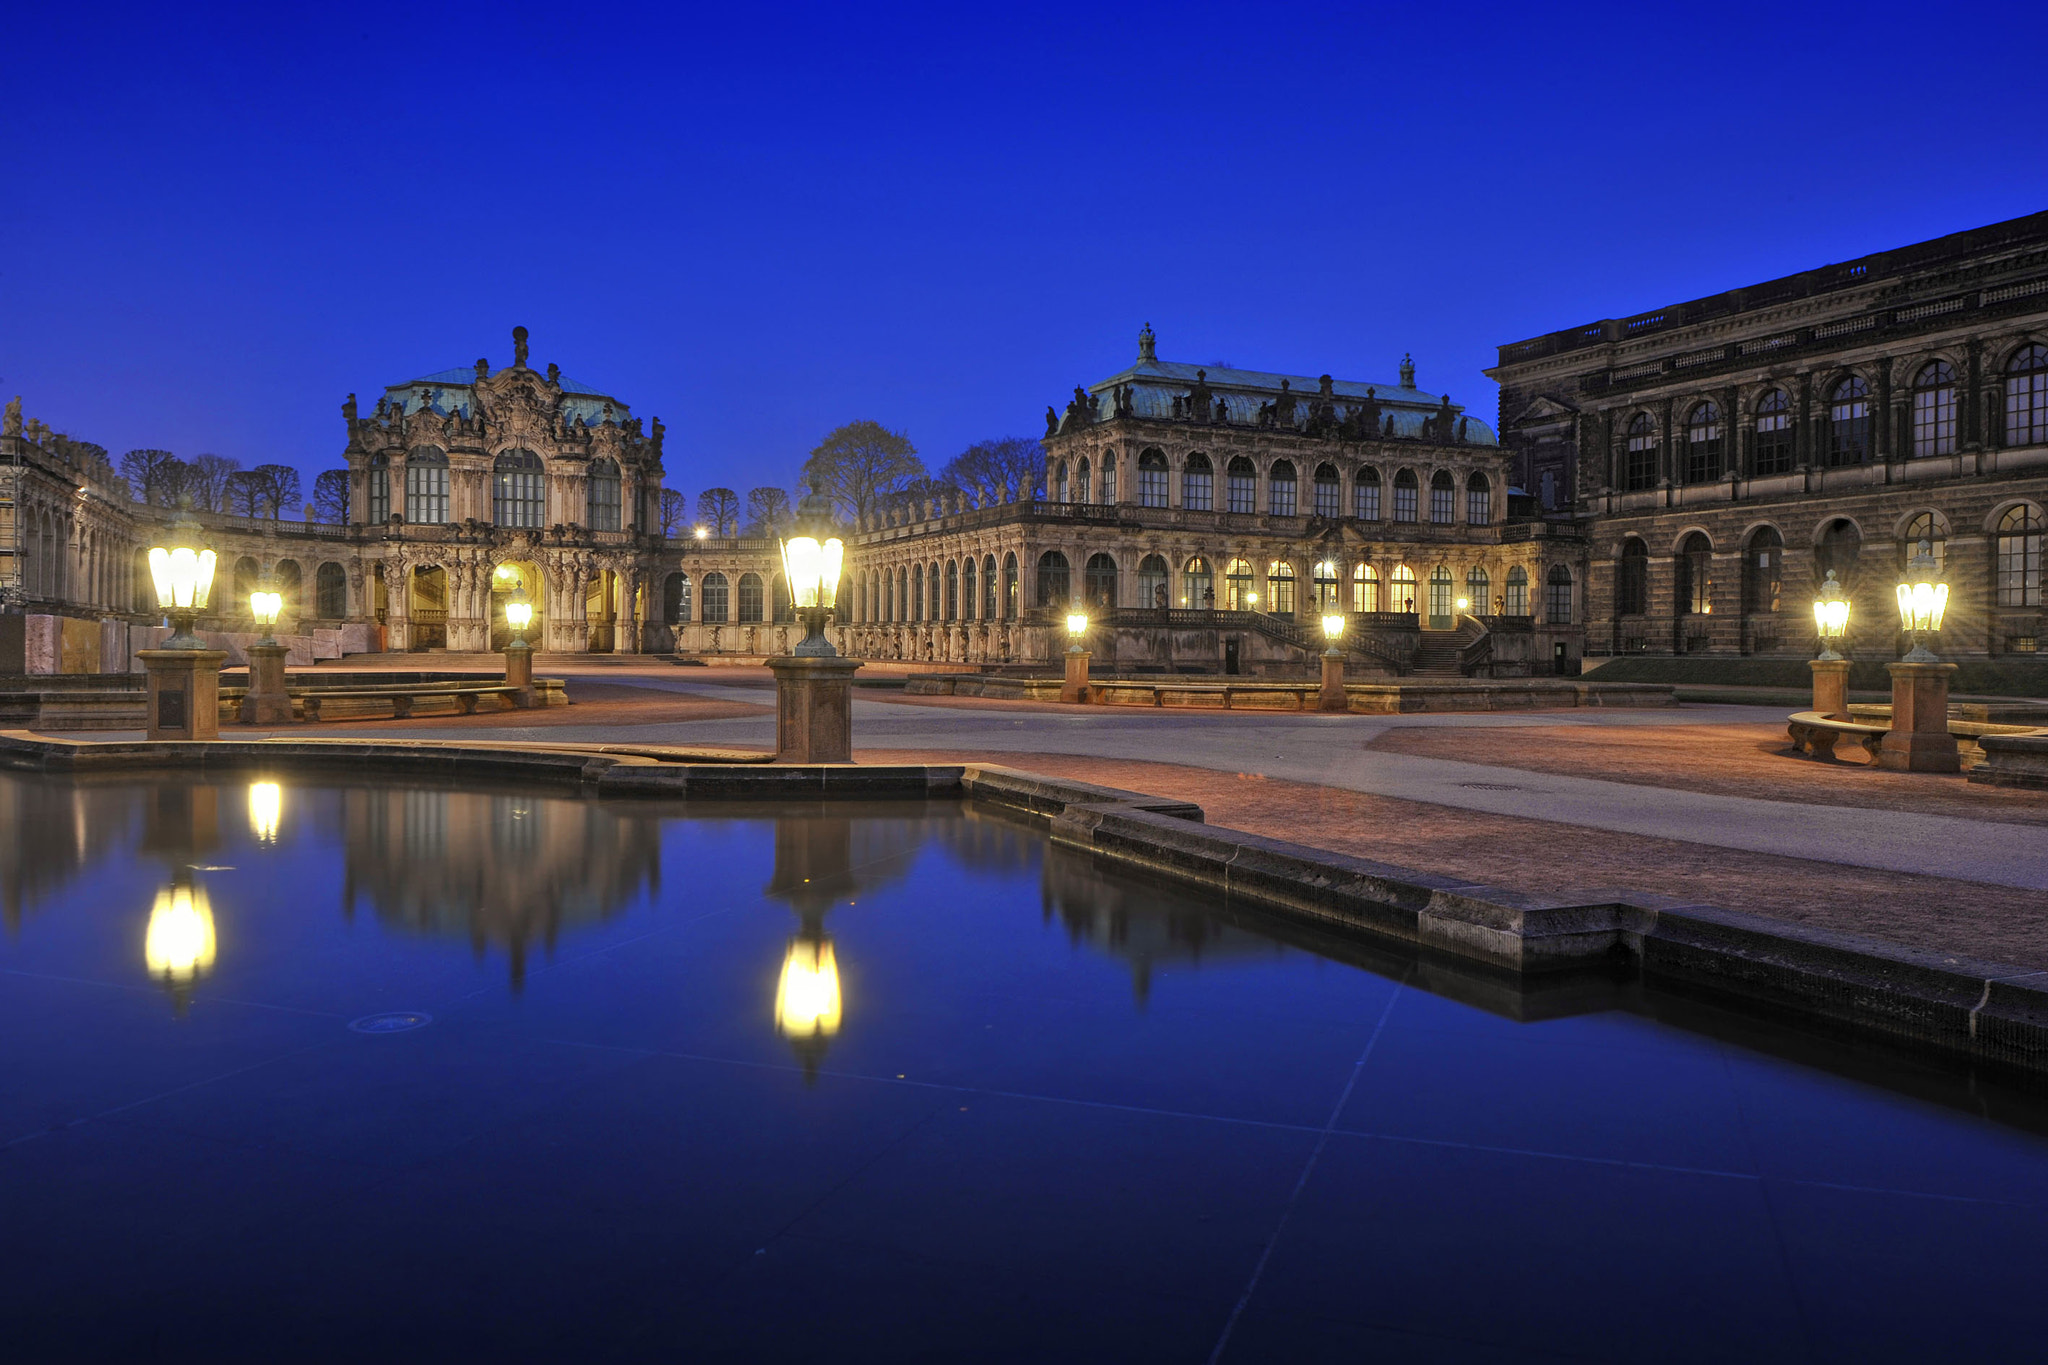 Photograph Zwinger by Dipta Nandana on 500px